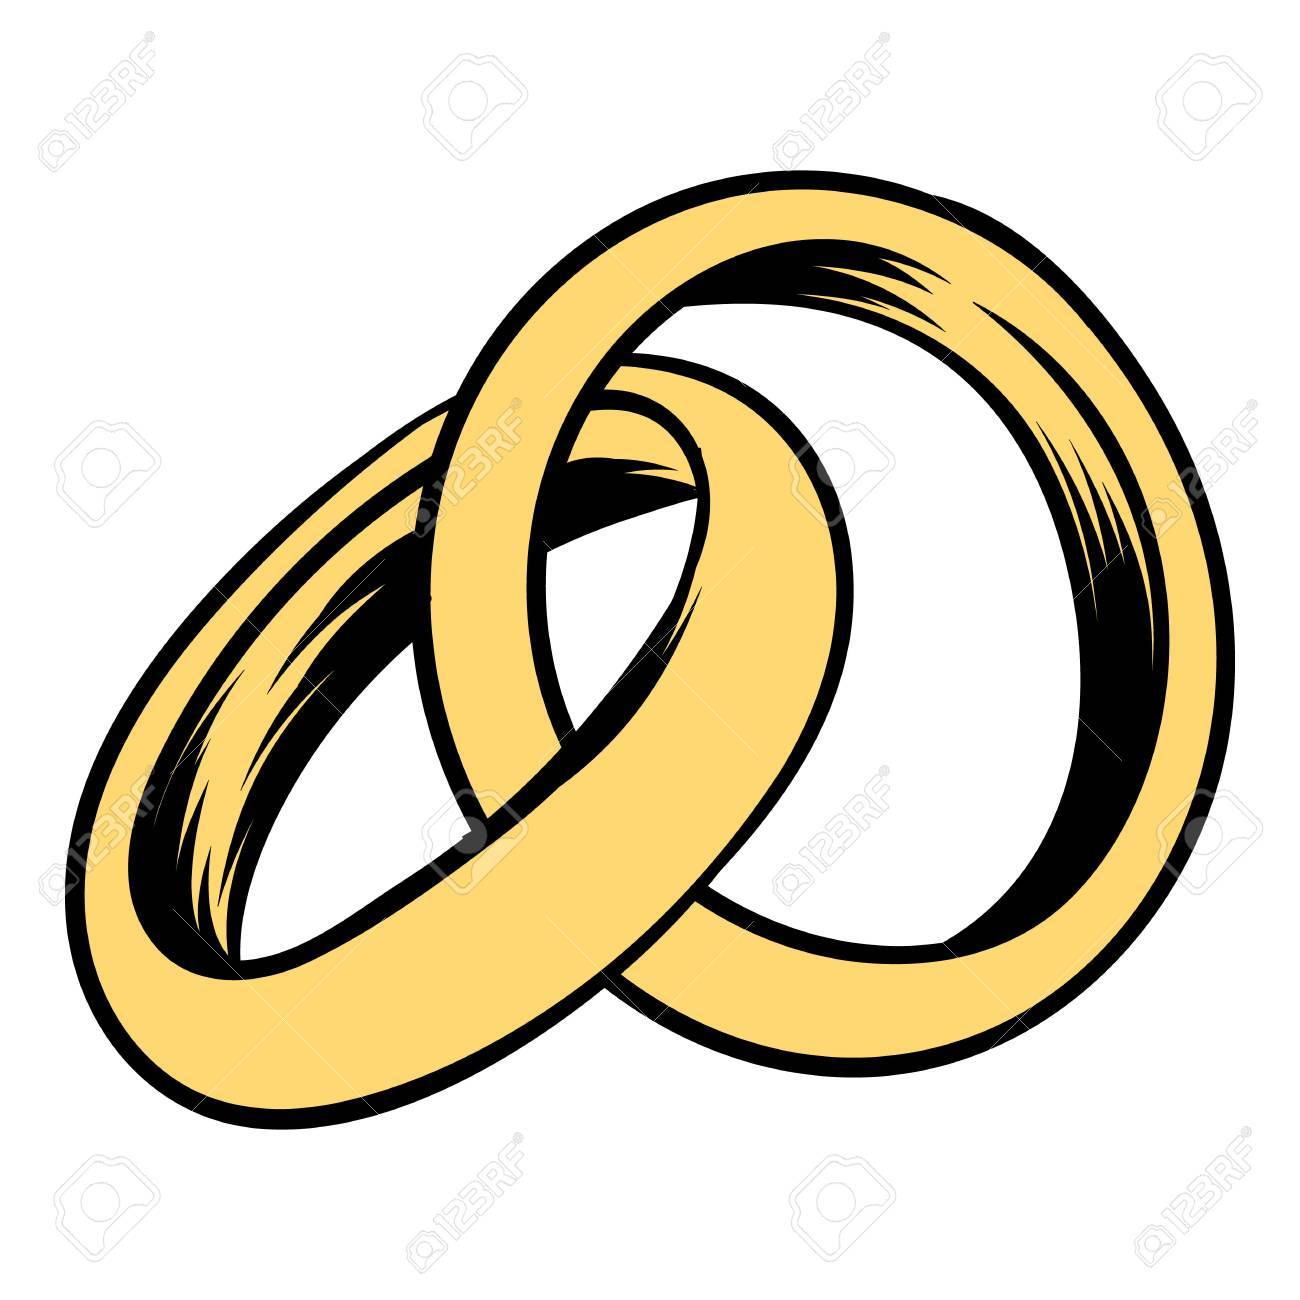 Wedding Rings Icon Cartoon Royalty Free Cliparts Vectors And Stock